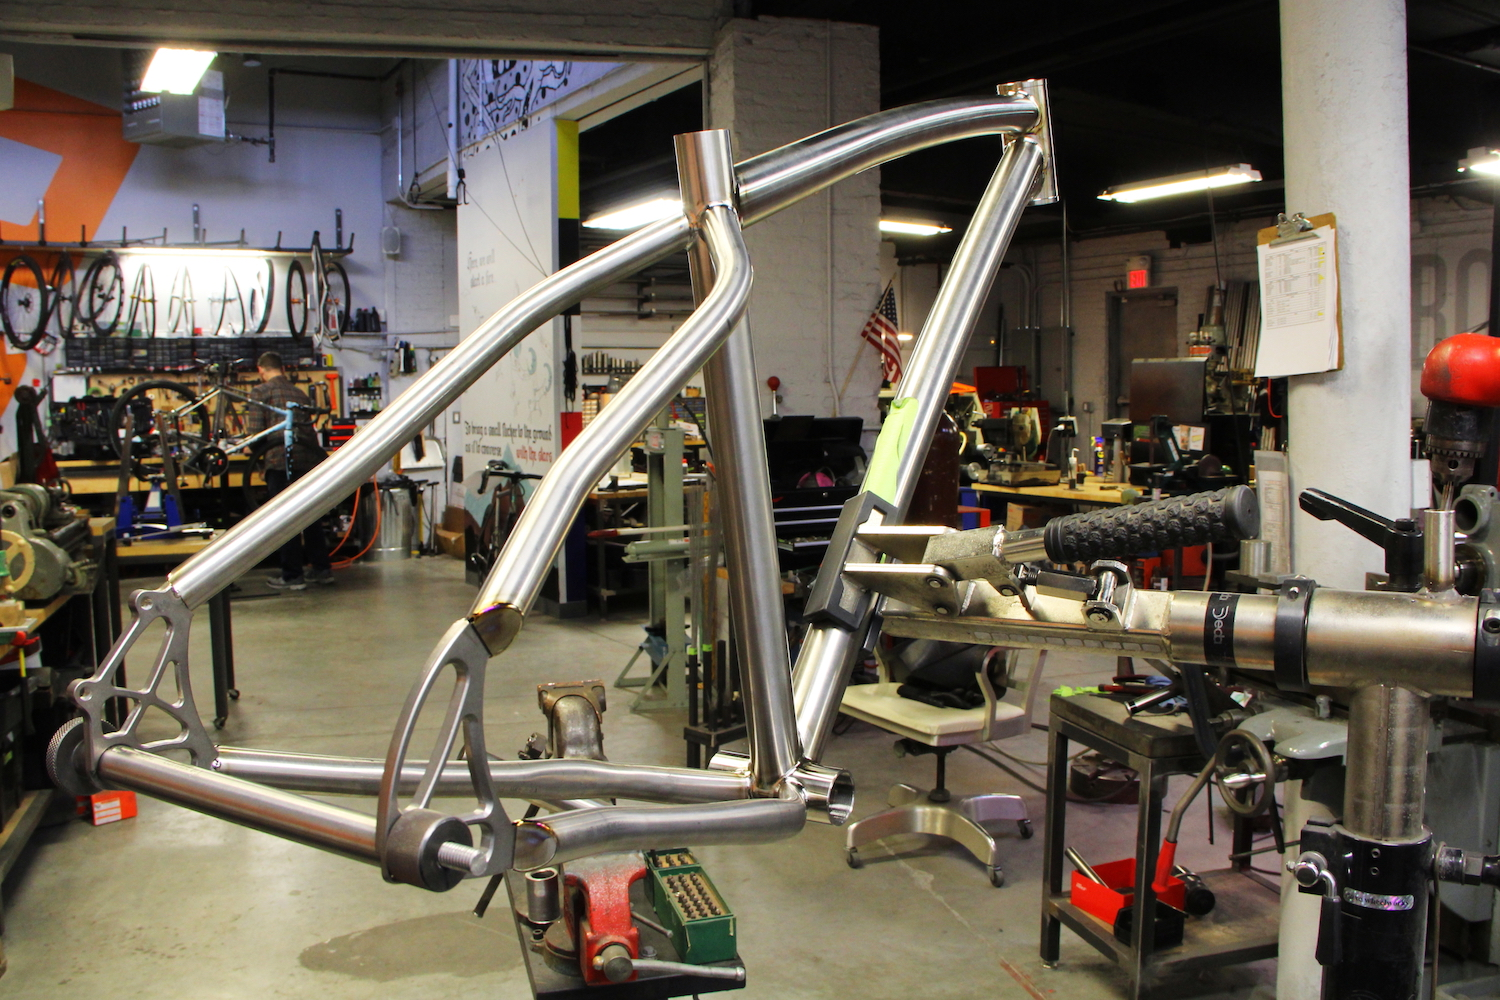 Almost ready for some sweet, anodized graphics.